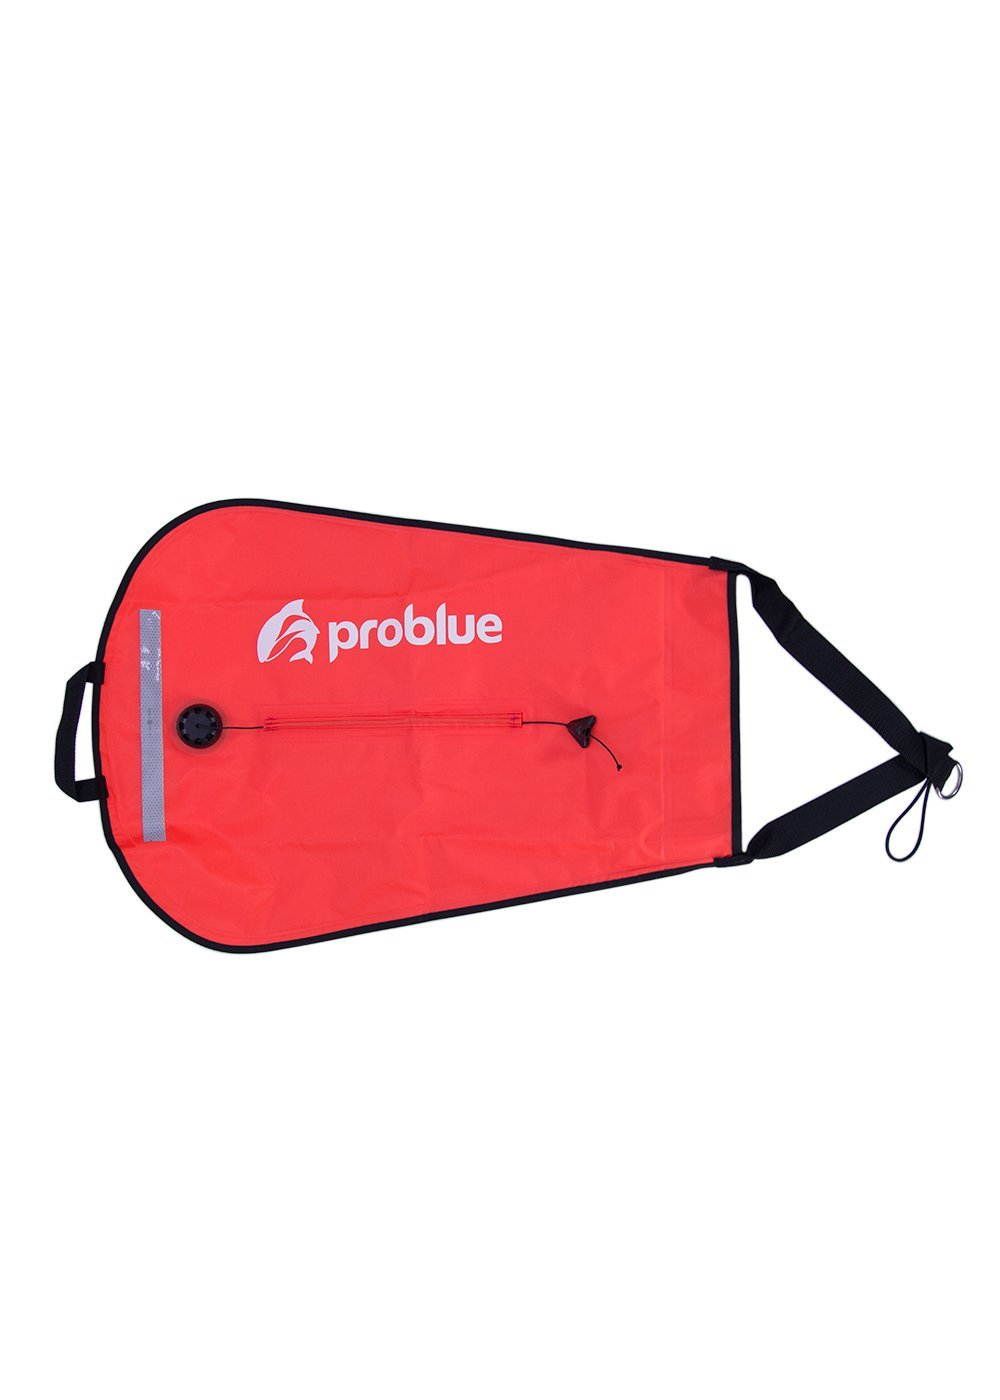 Problue 70lb Lift Bag